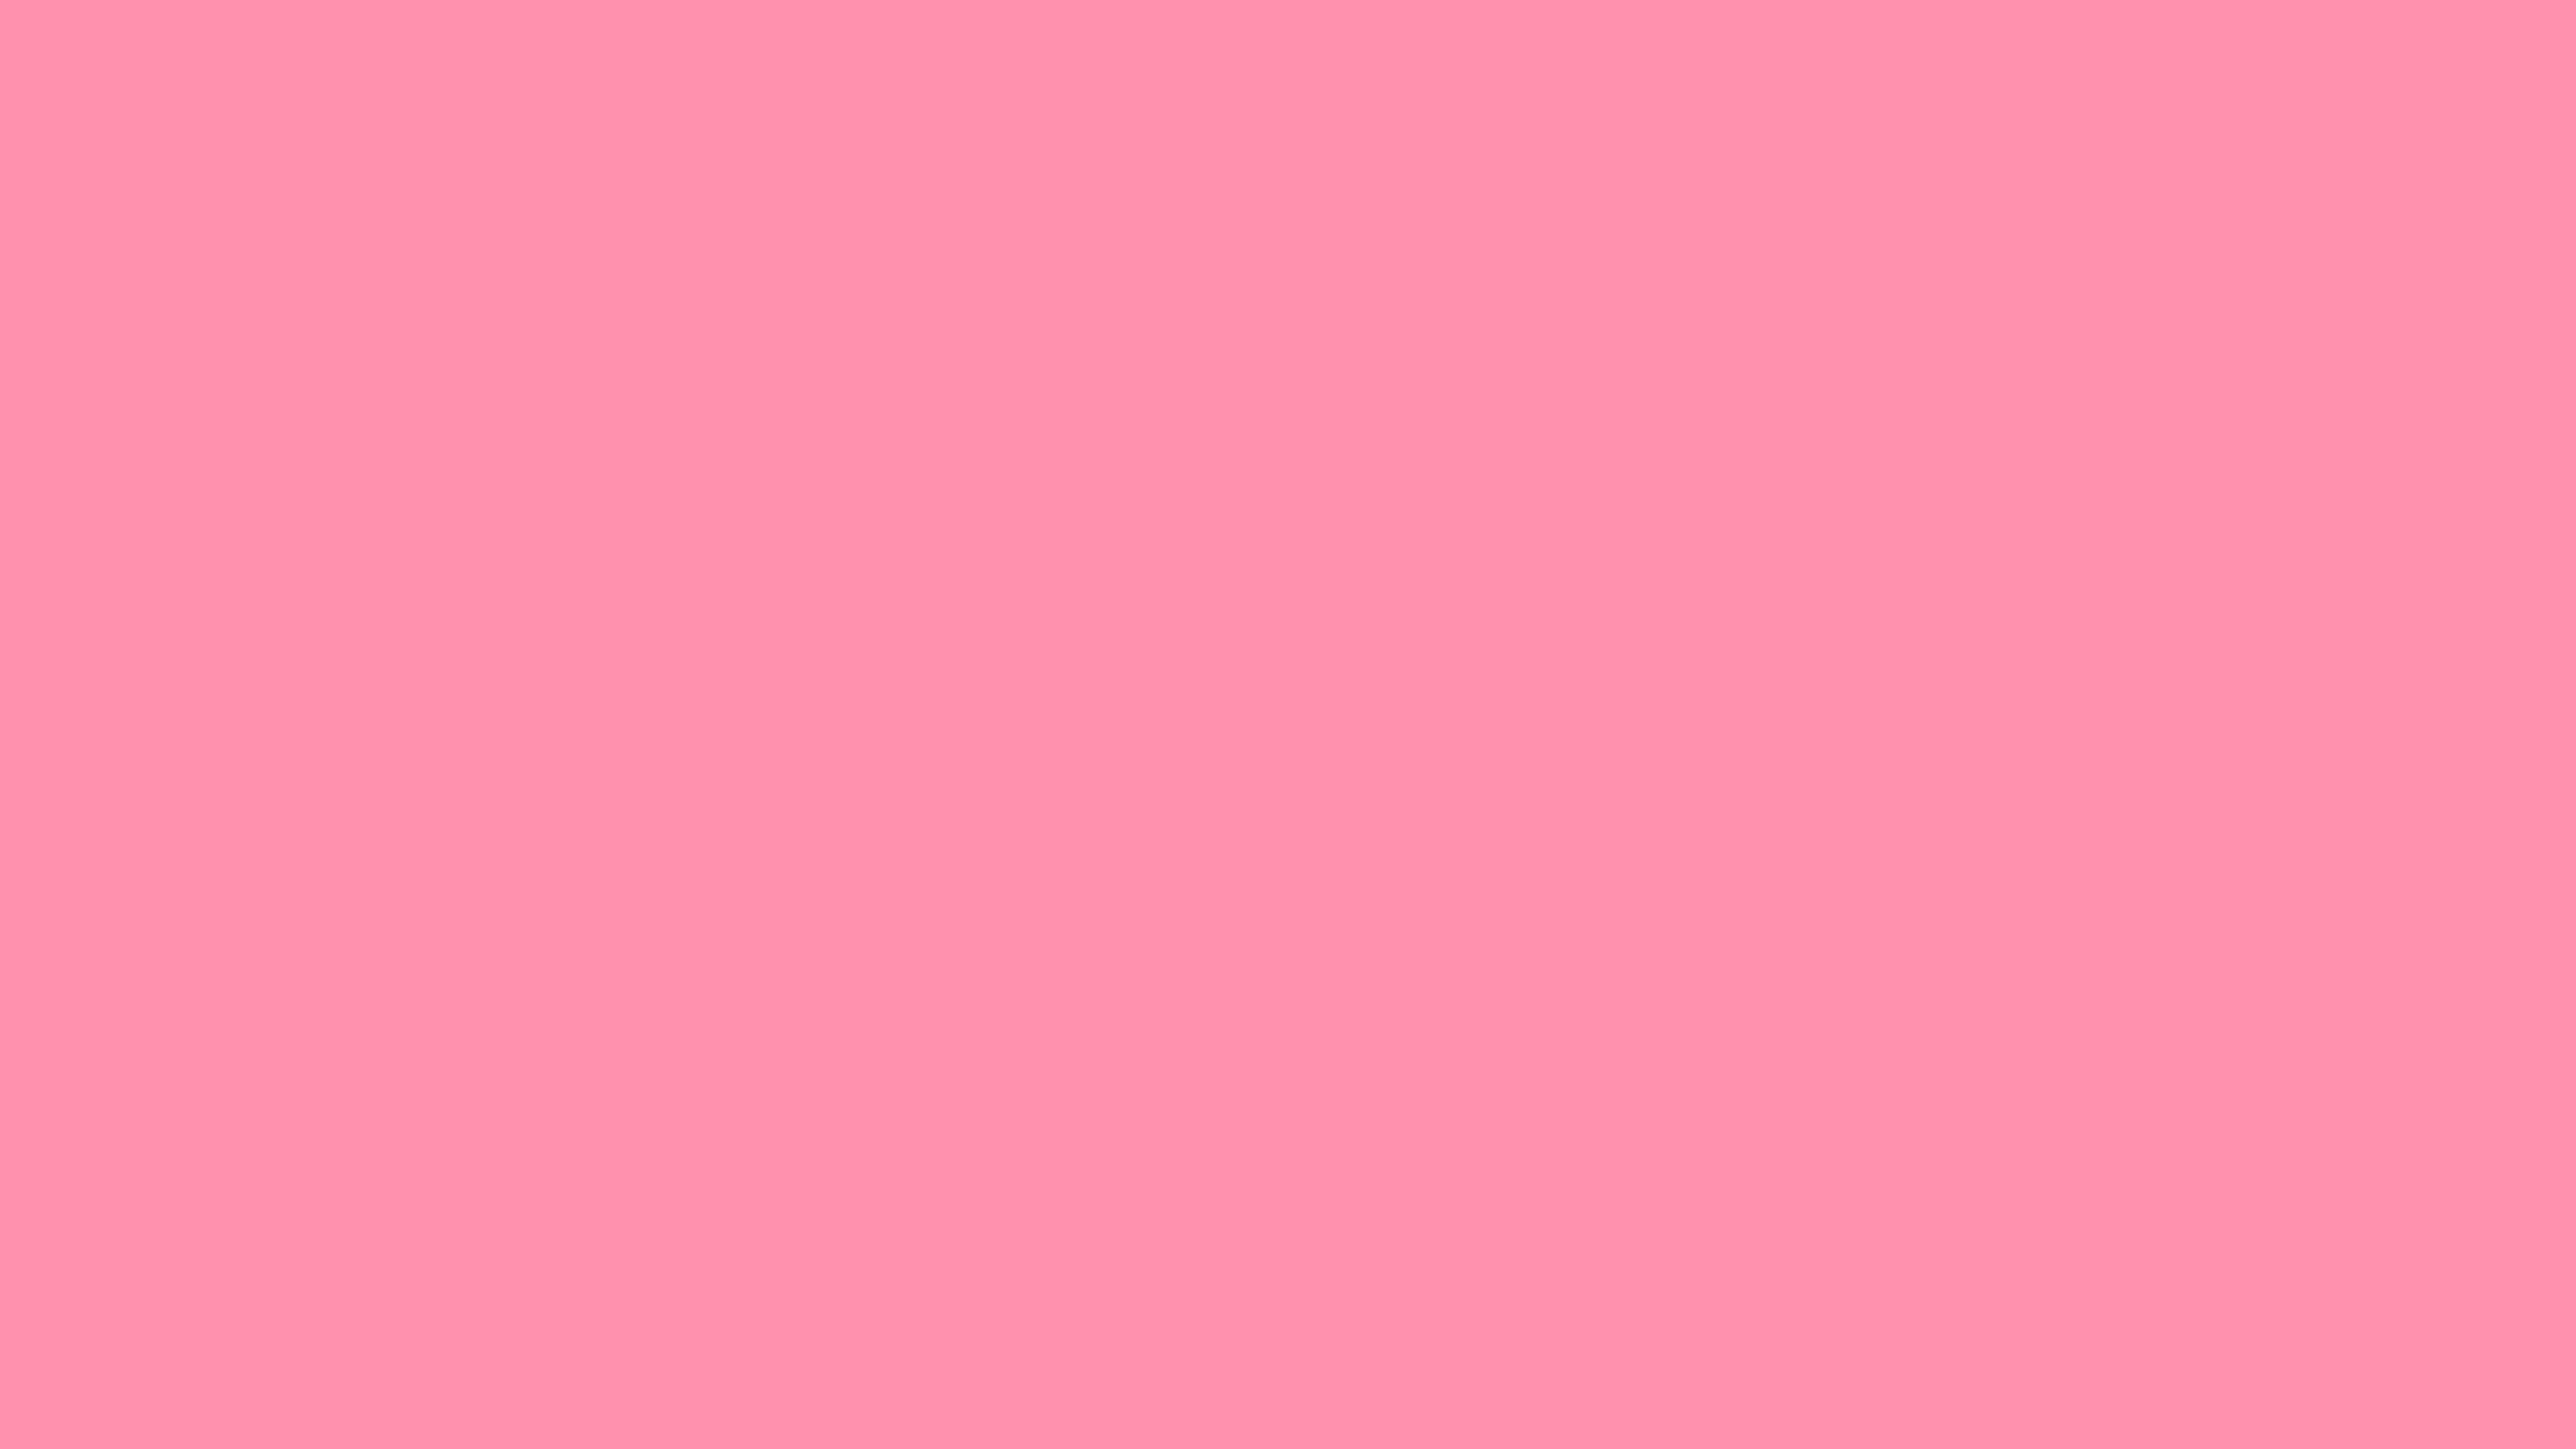 Download Complementary Color To Pink Monstermathclub Com